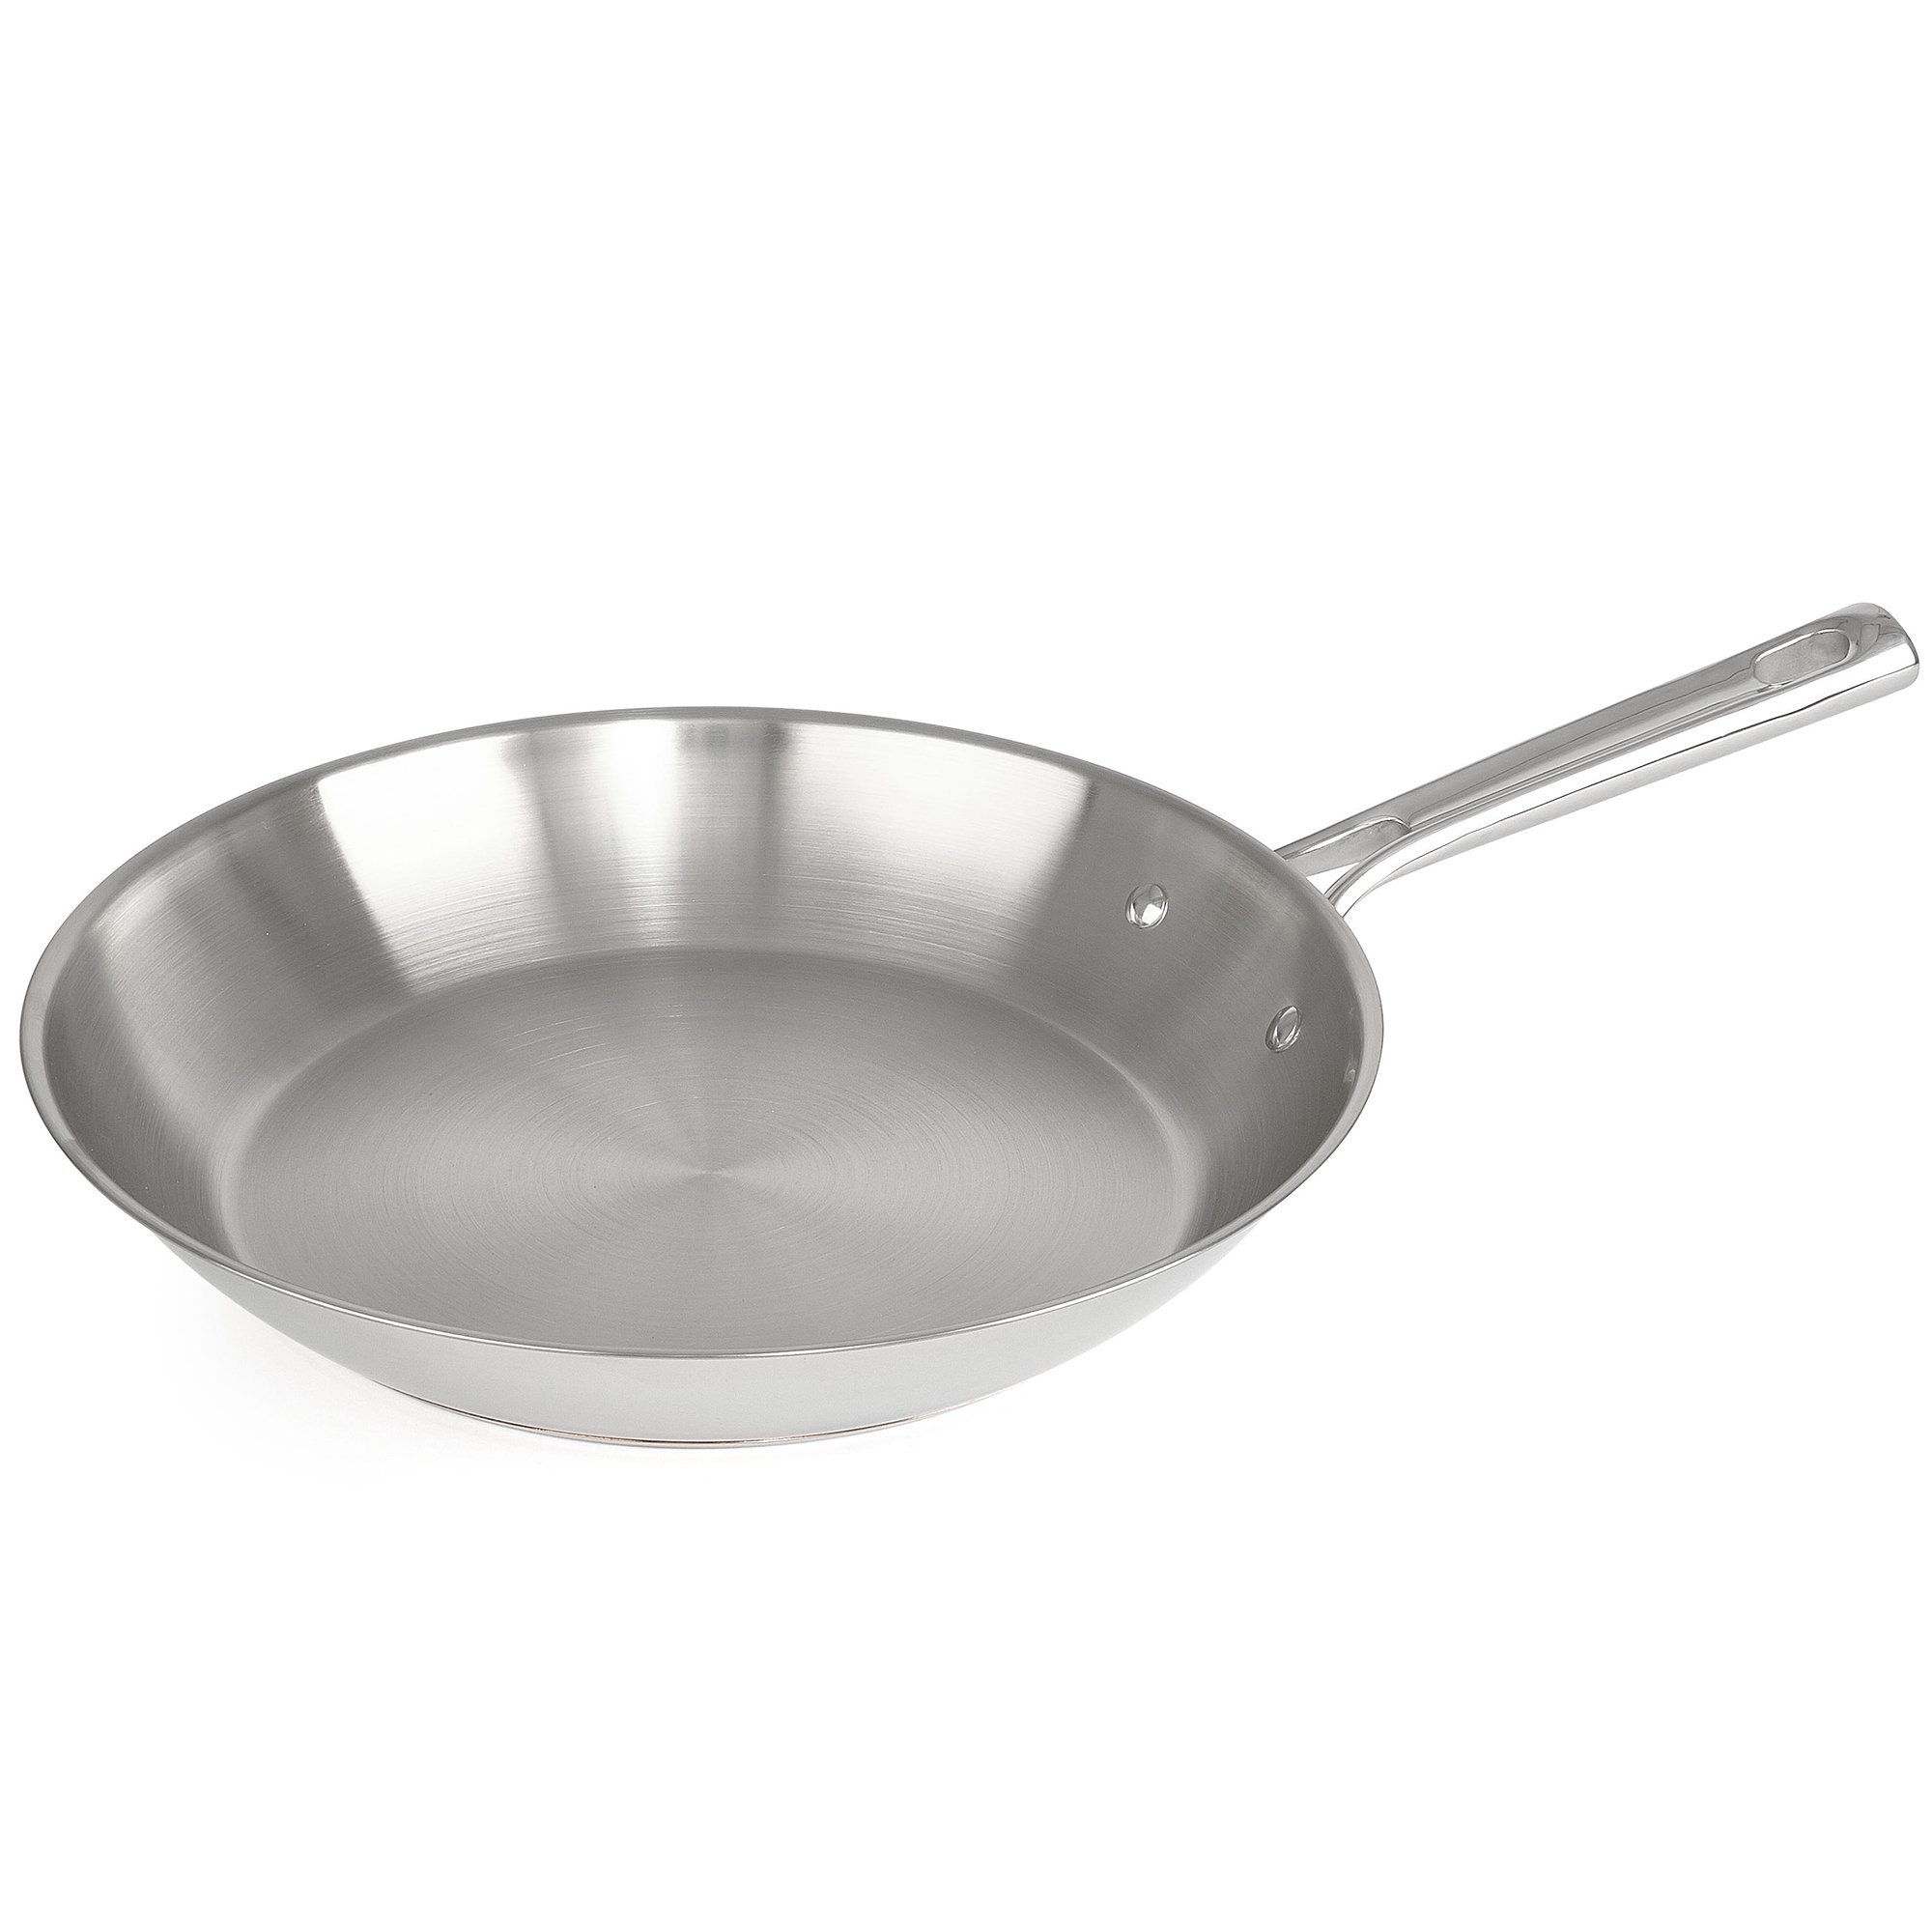 Emeril Lagasse 62894 Stainless Steel Copper Core Fry Pan, 12-Inch'', Silver